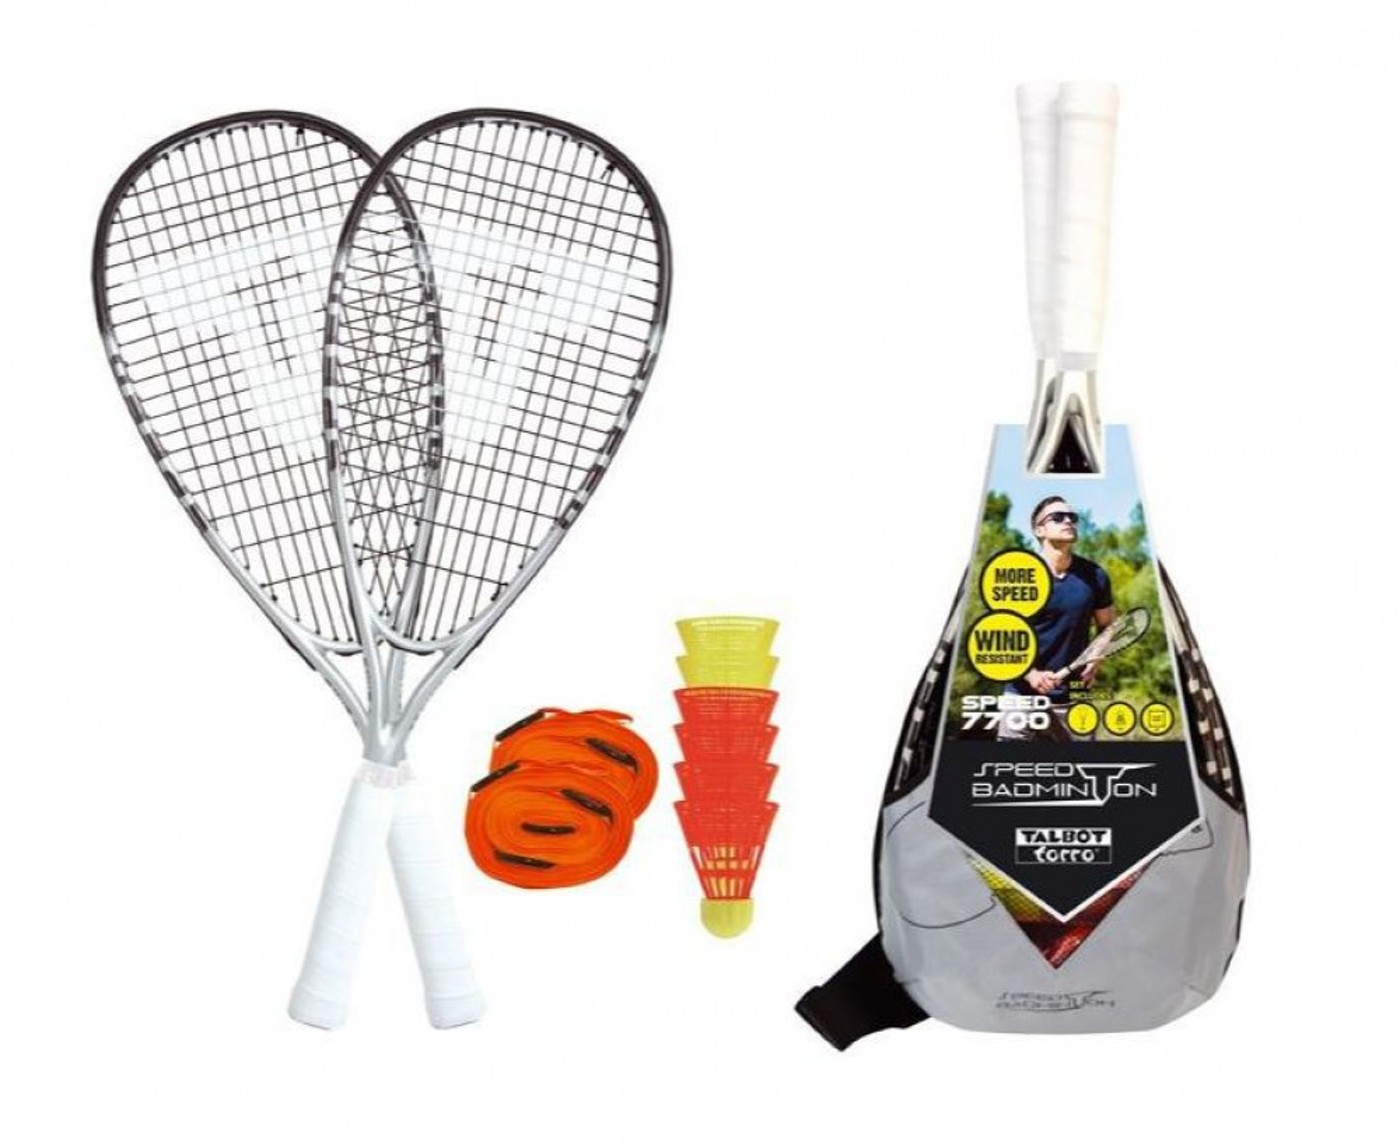 TALBOT TORRO Speedbadminton Set Speed 7700